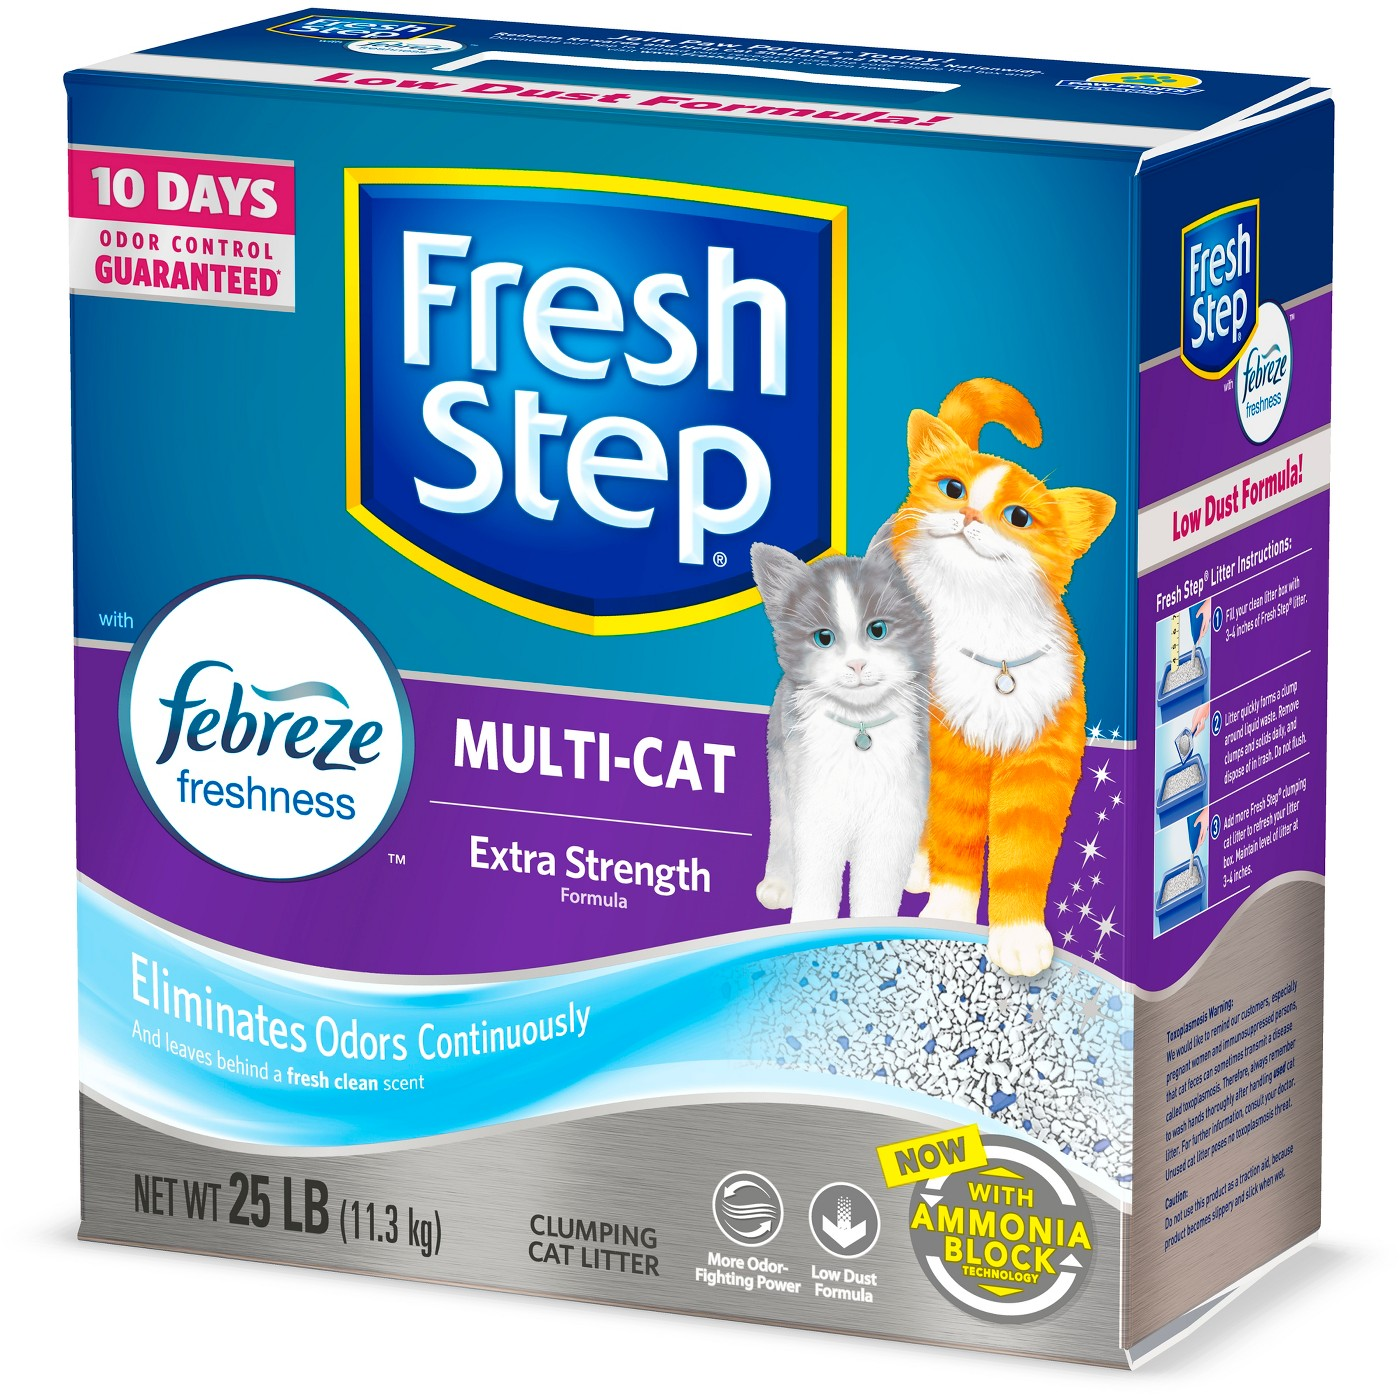 Fresh Step Multi-Cat with Febreze Freshness Scented Clumping Cat Litter - 25lb - image 1 of 9